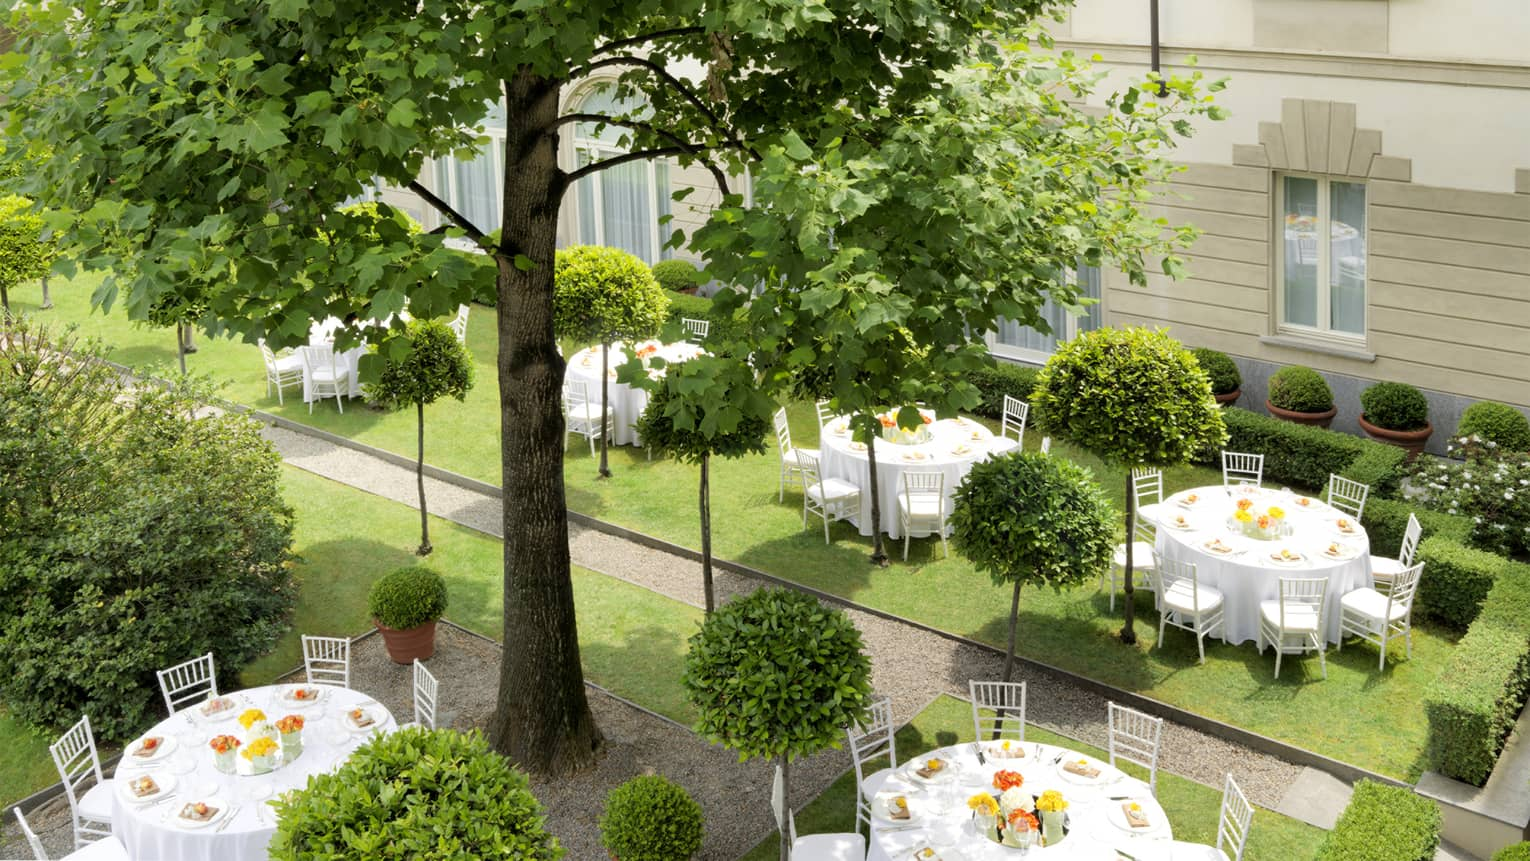 Round banquet tables with white linens on garden event lawn